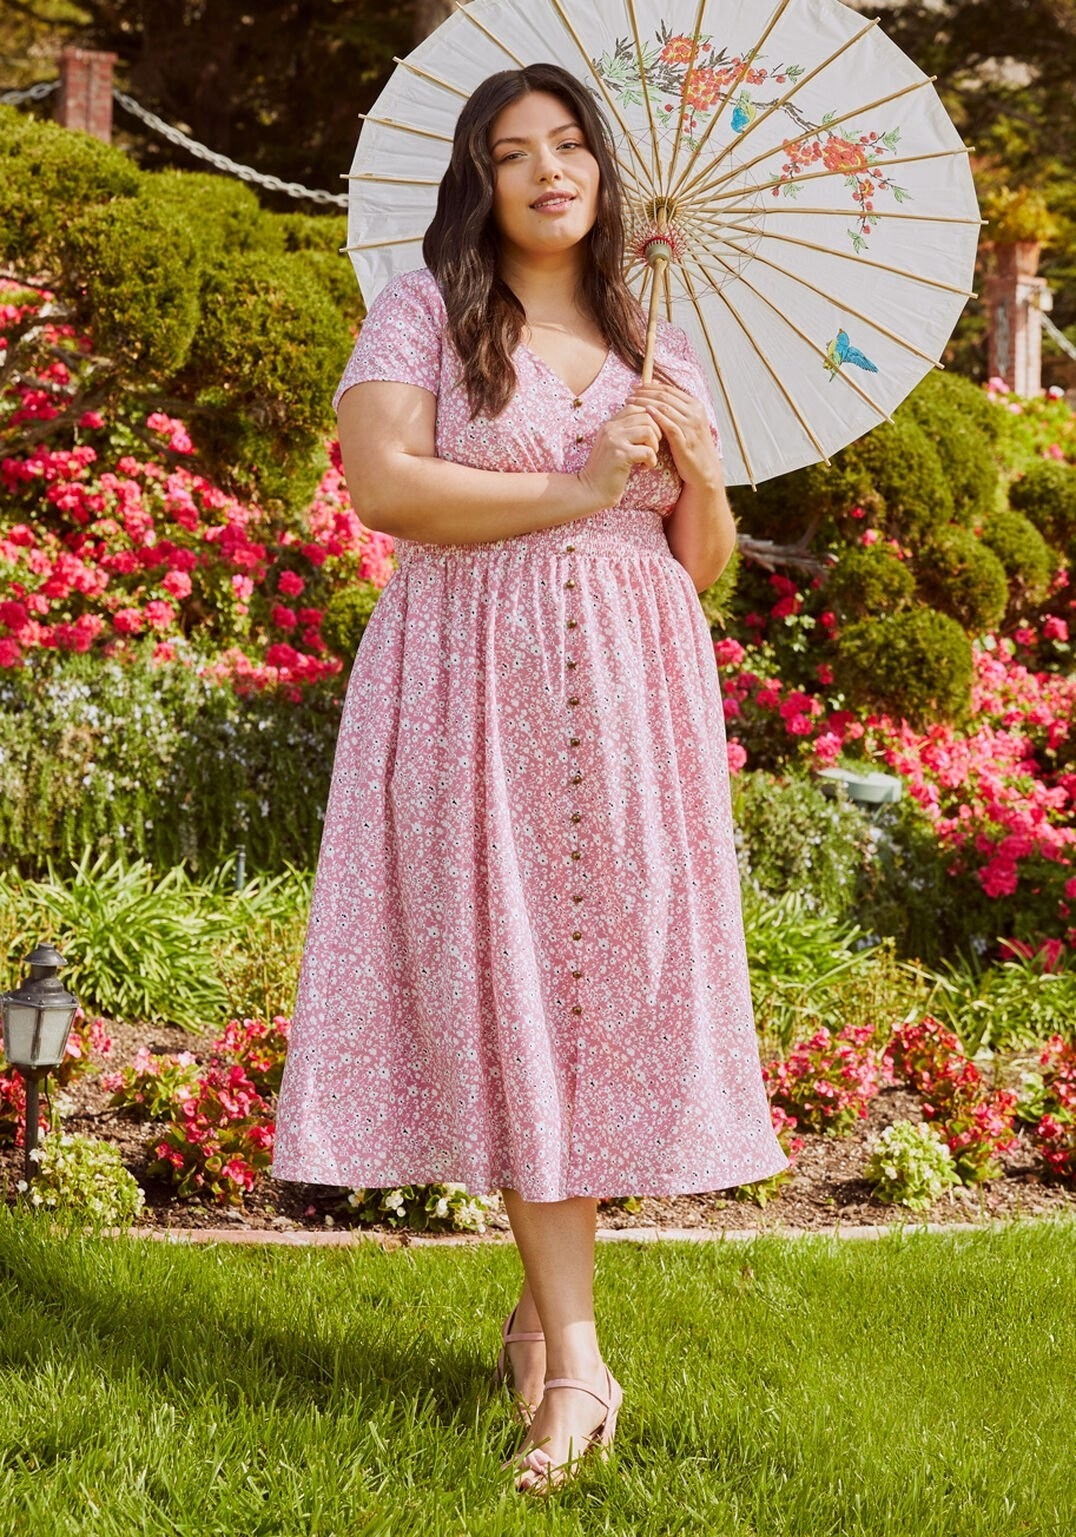 model wearing V-neck pink floral dress with decorative buttons